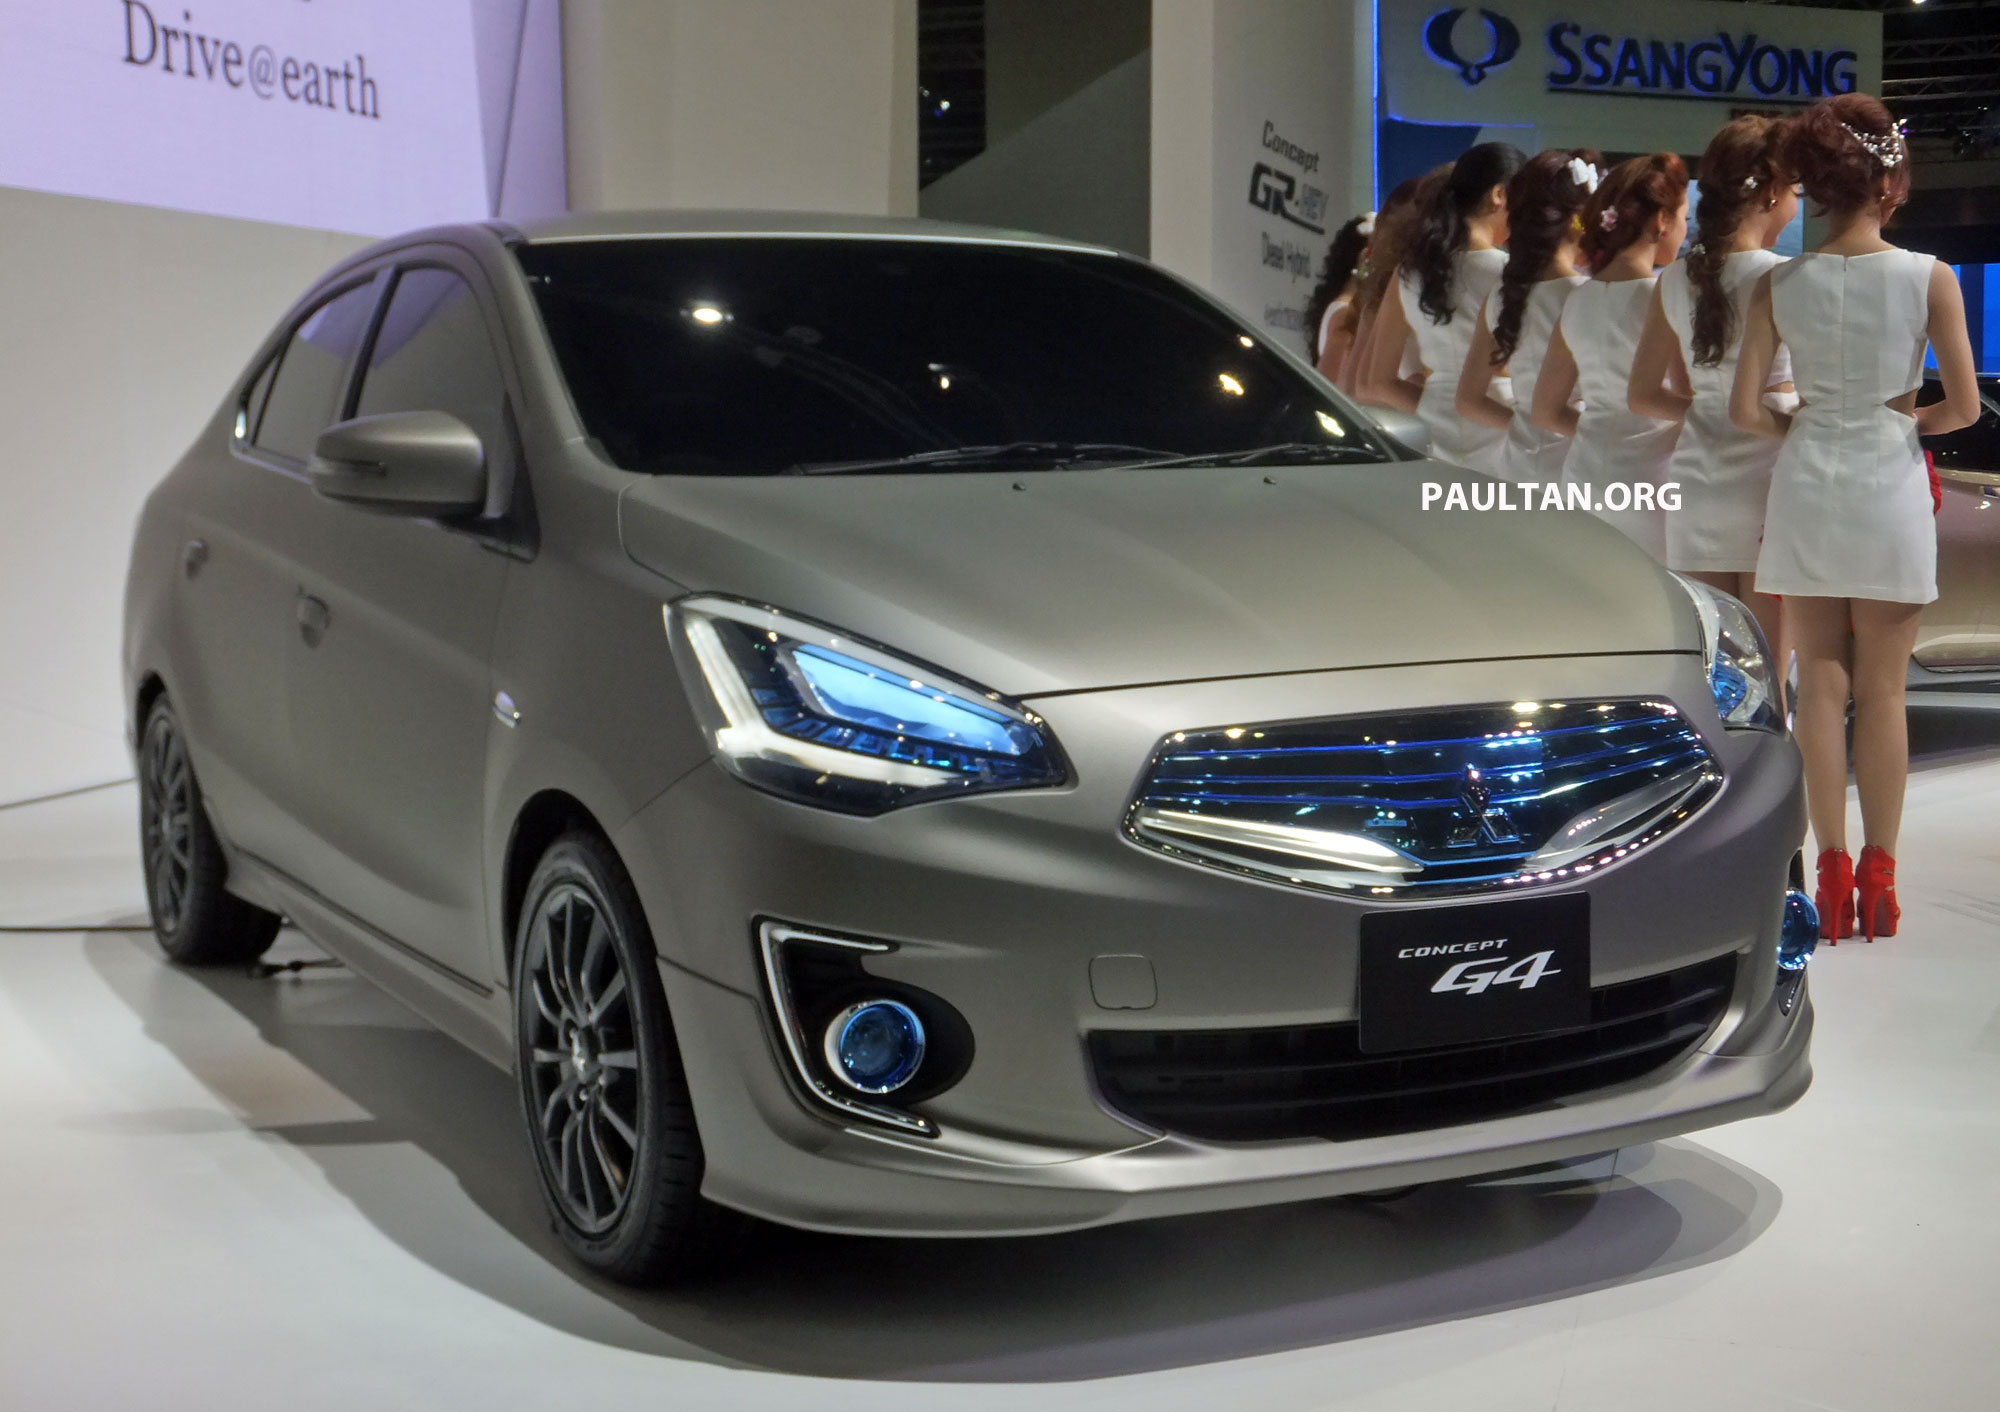 Mitsubishi Concept G4 previews Mirage sedan